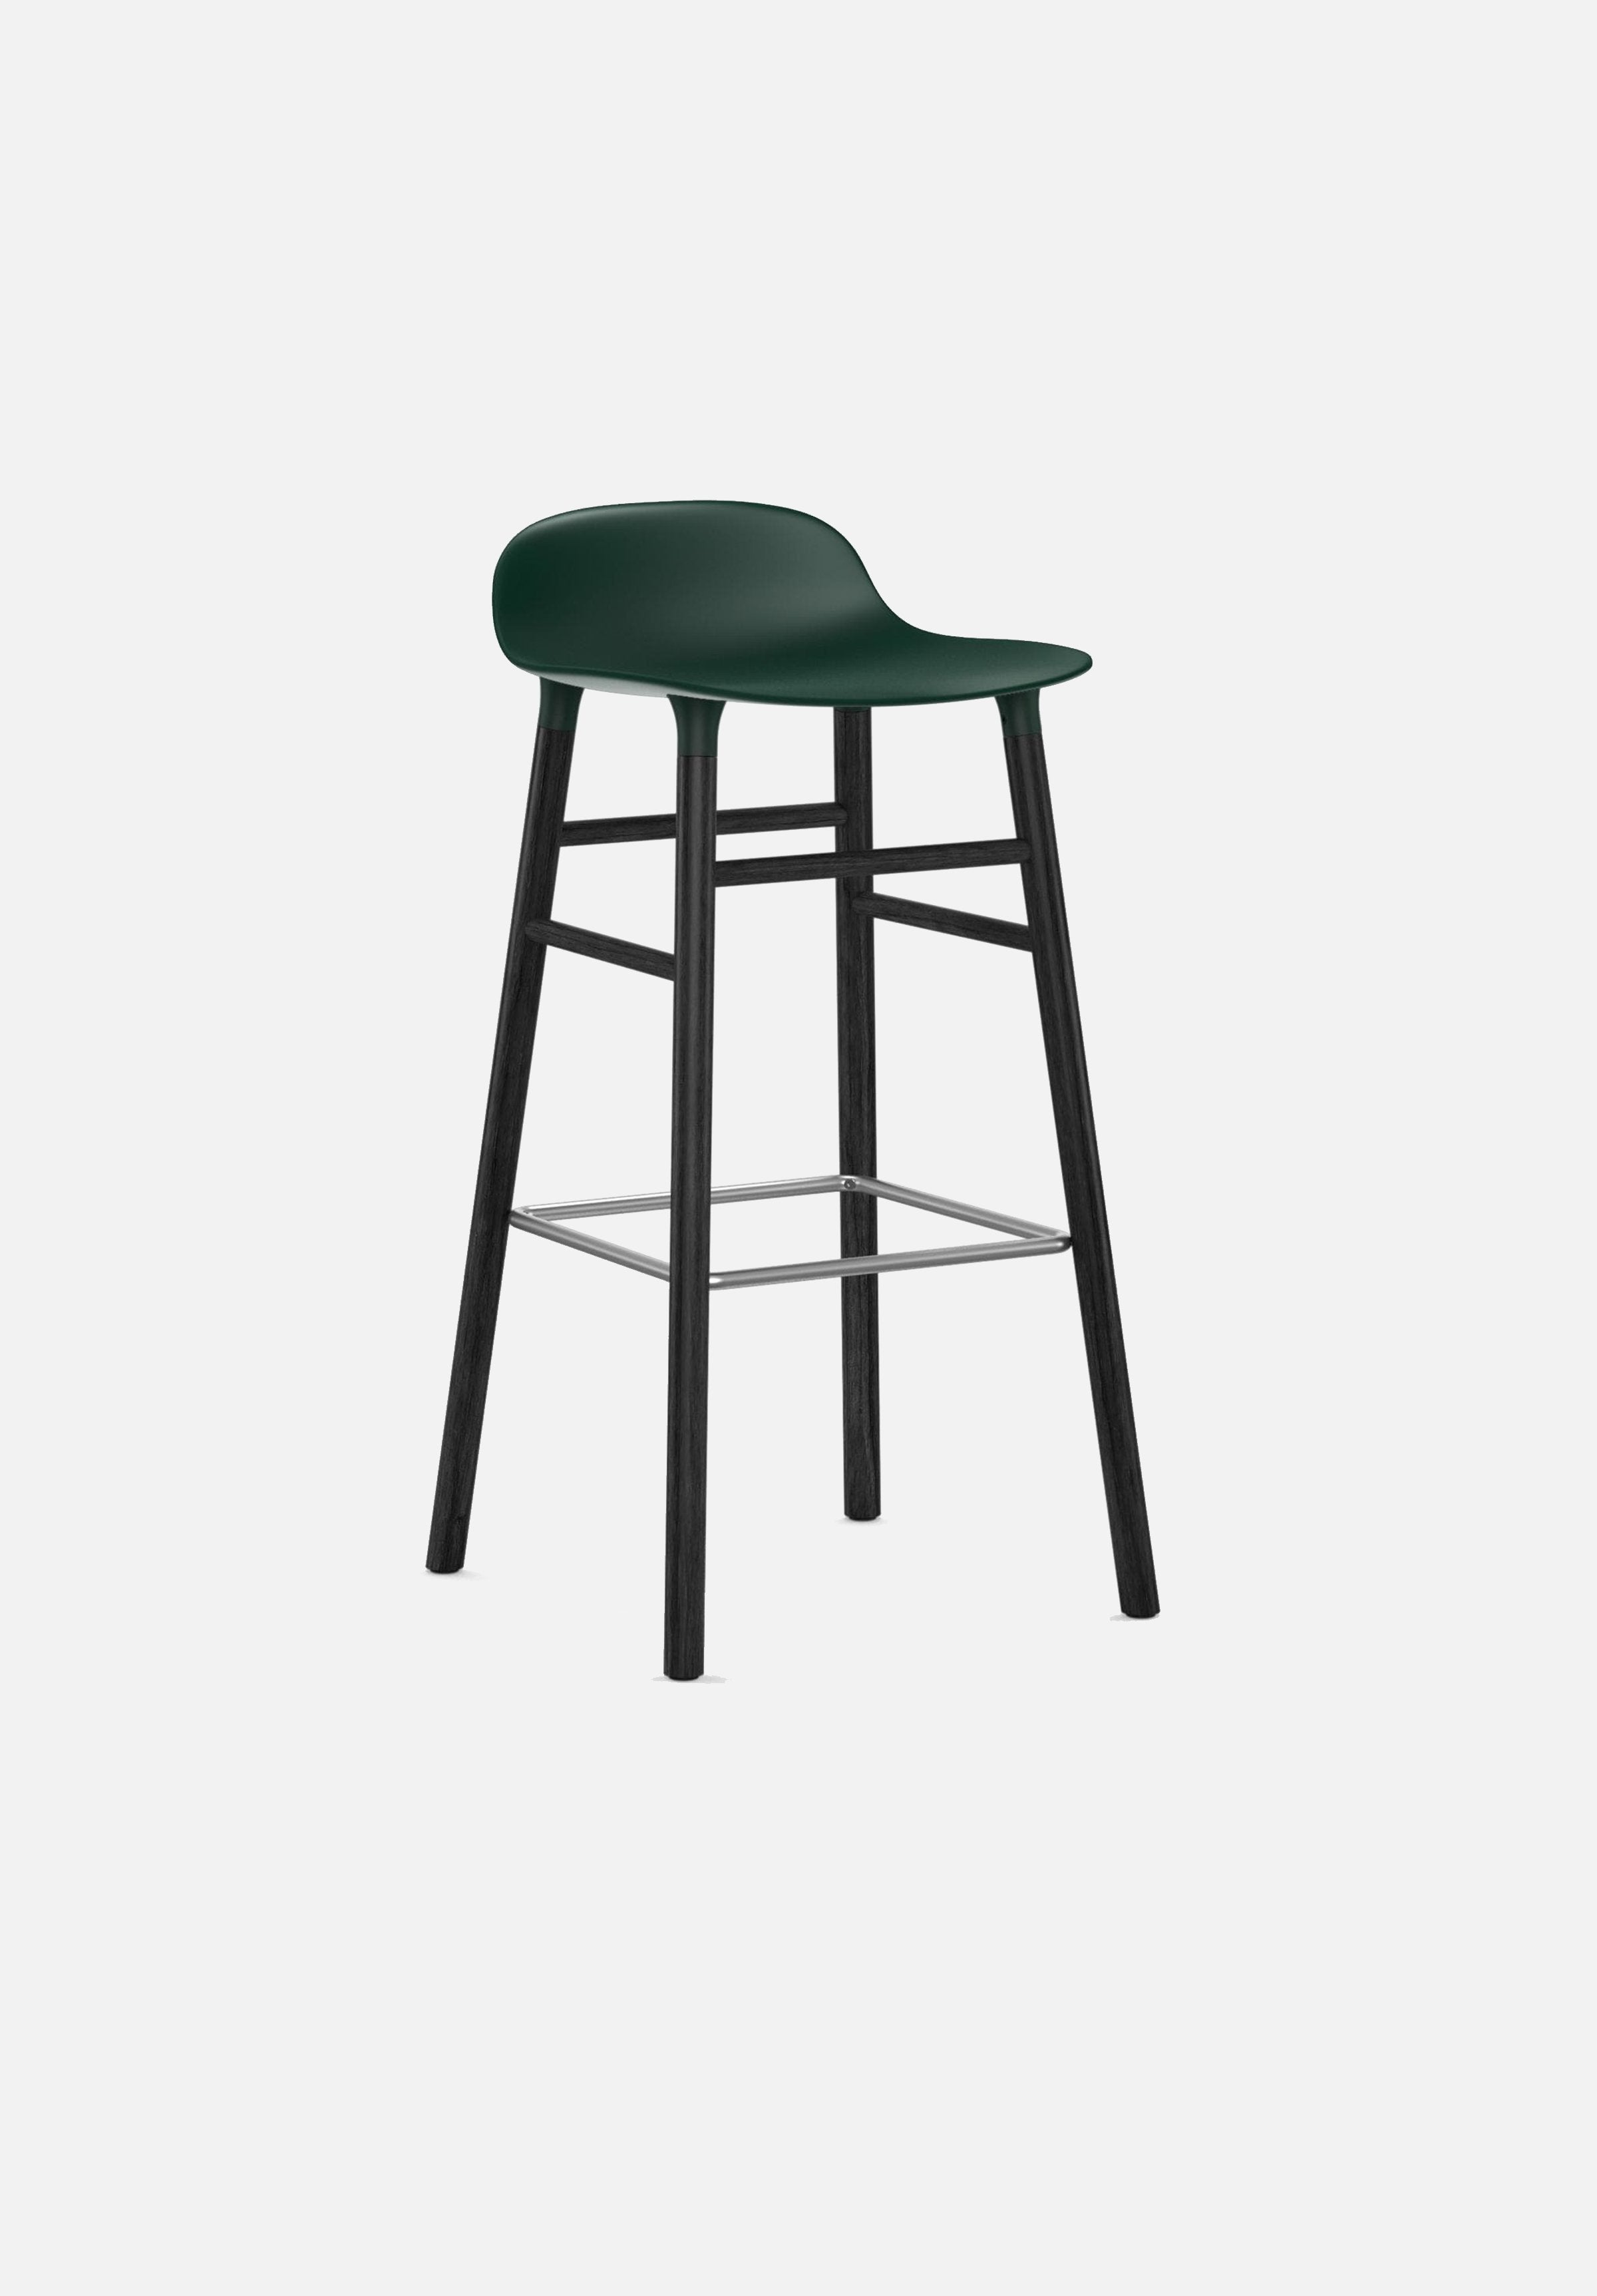 Form Stool — 75cm-Simon Legald-Normann Copenhagen-Green-Black Lacquered Wood-Average-canada-design-store-danish-denmark-furniture-interior